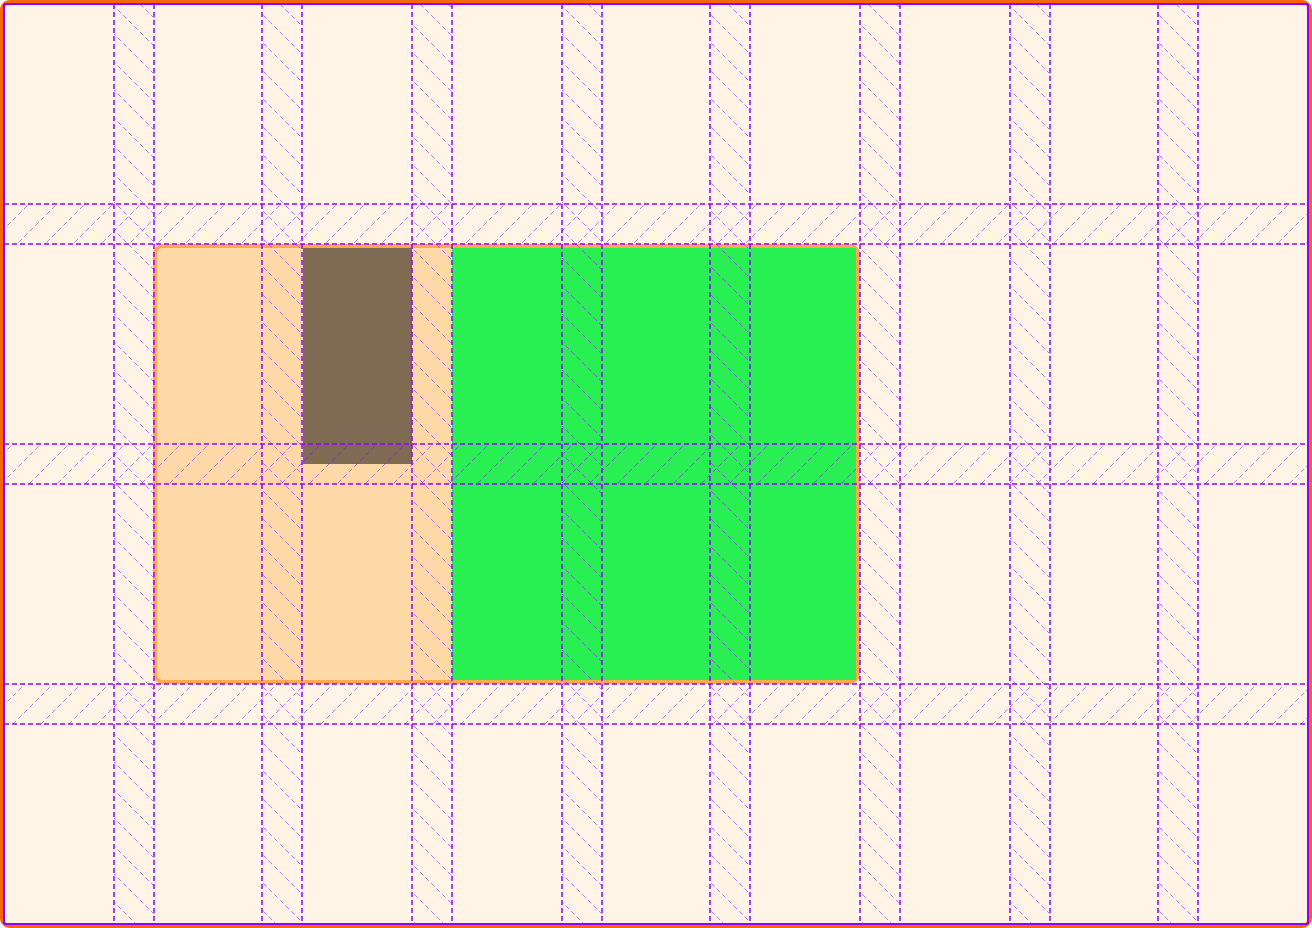 The smaller item displays in the gap as row-gap is set to 0 on the subgrid.